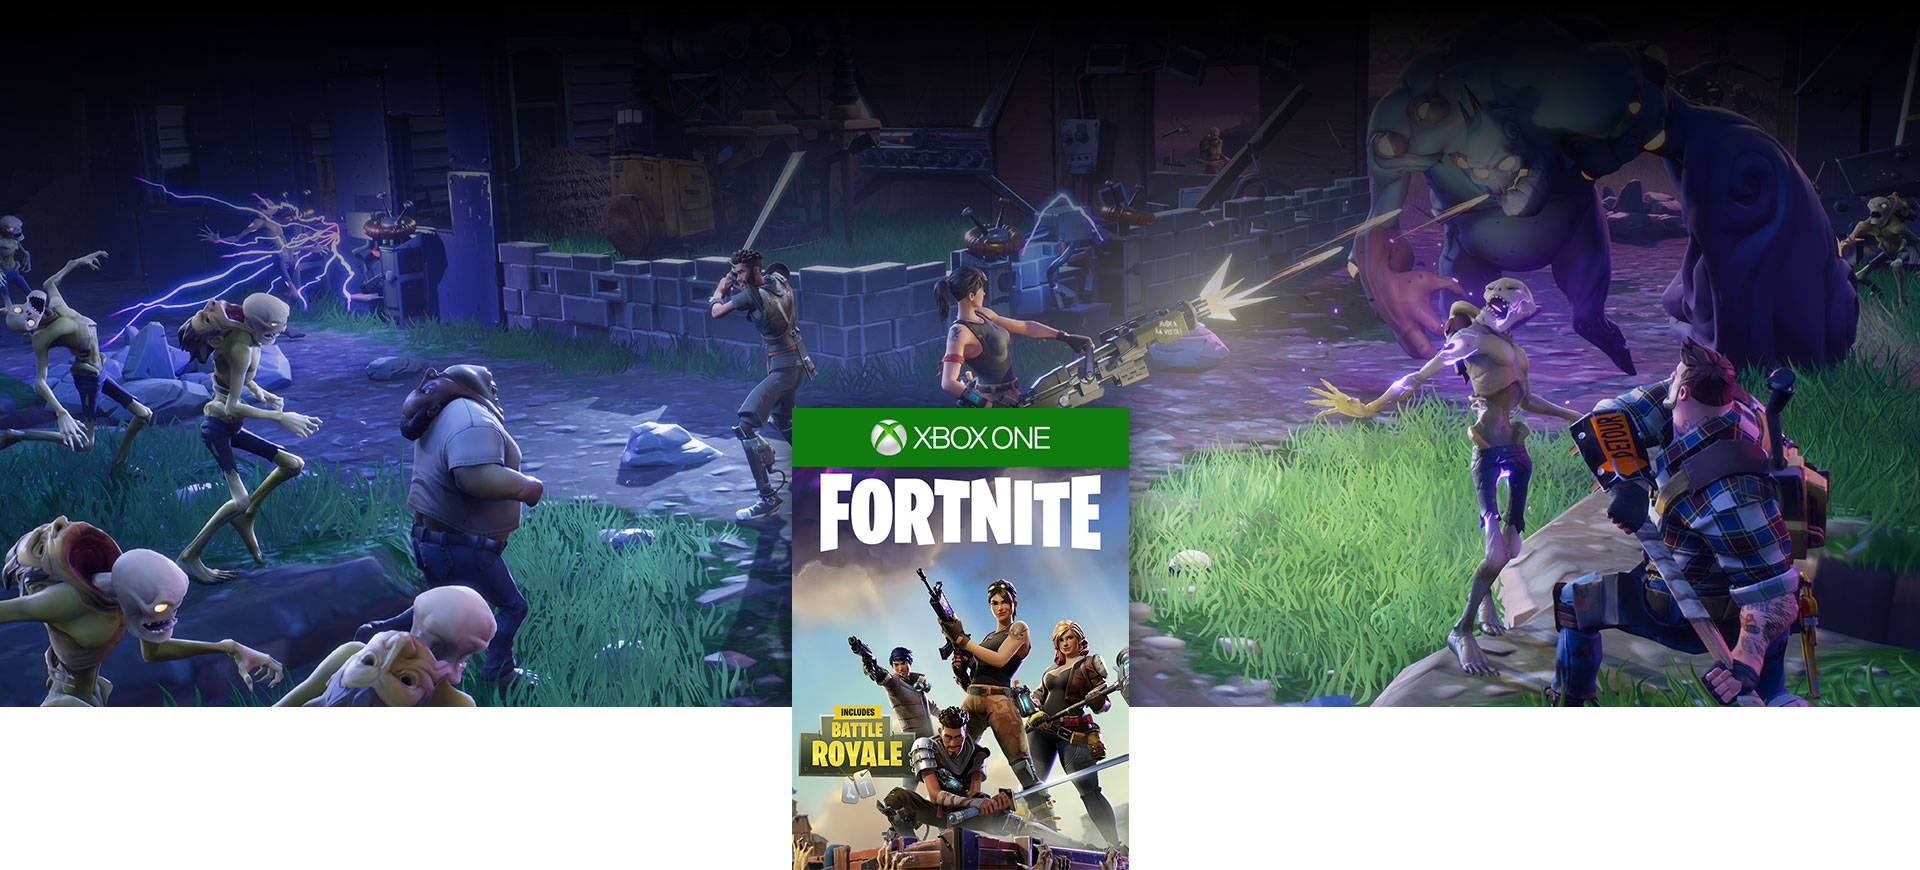 Fortnite boxshot, Fortnite characters fight off surrounding monsters